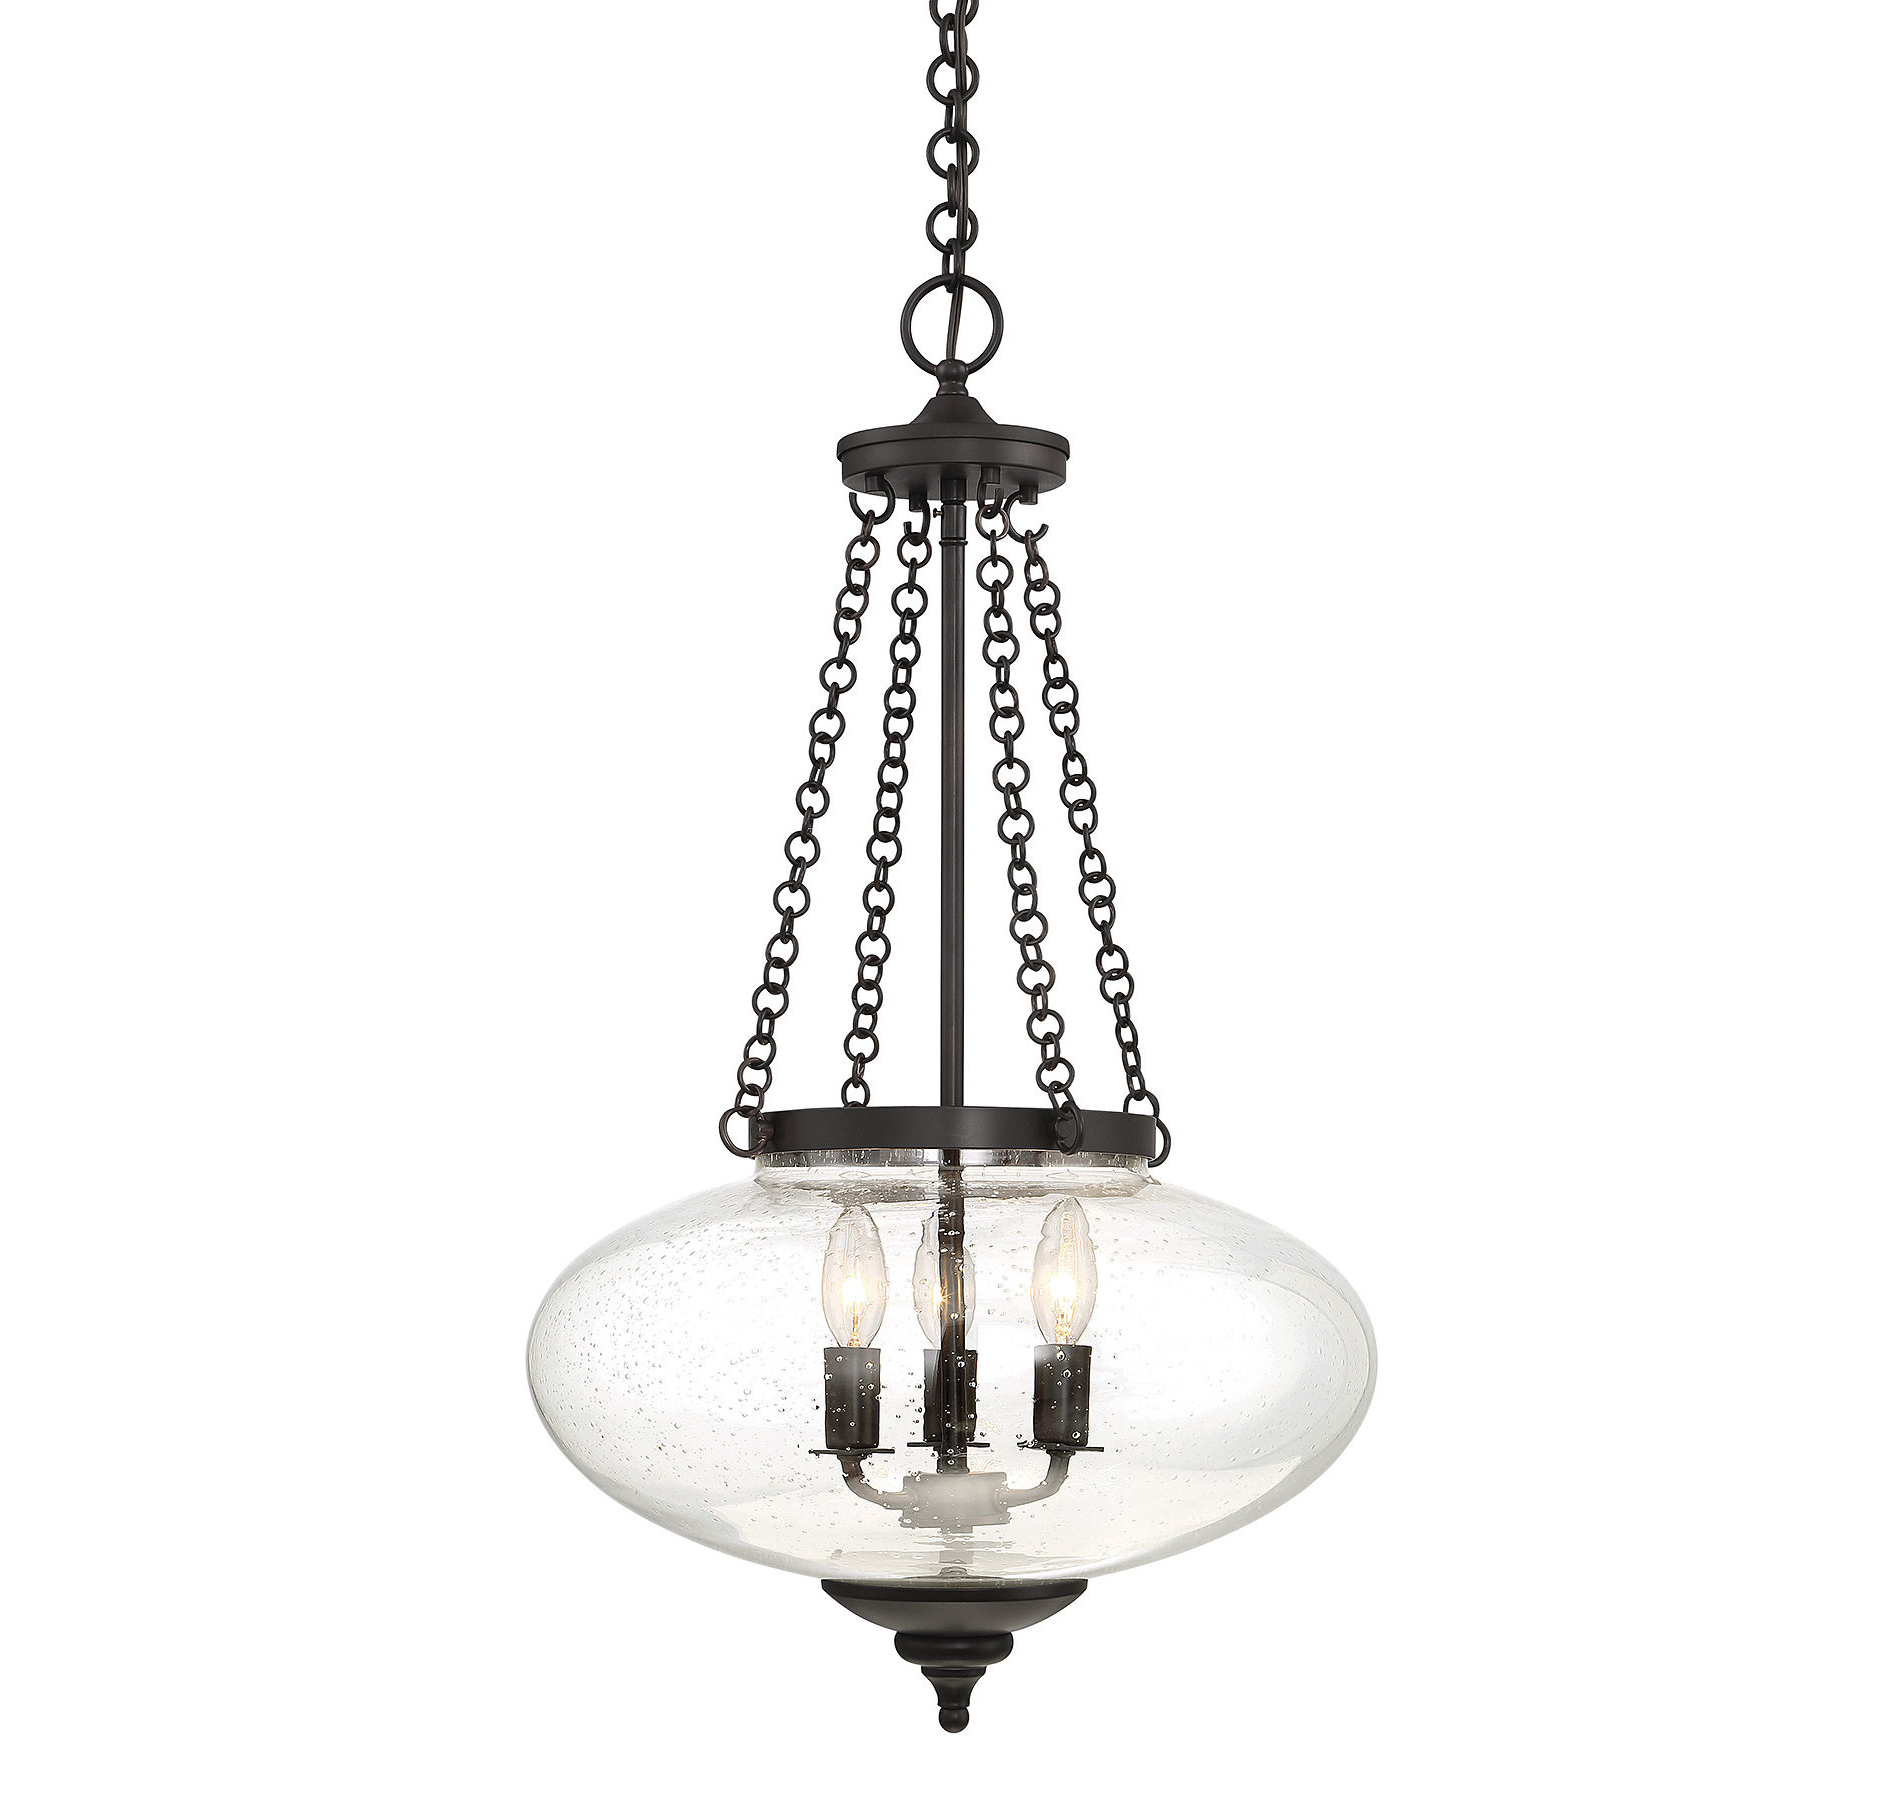 Fortunat 3 Light Urn Pendant With Regard To Most Current Spokane 1 Light Single Urn Pendants (View 11 of 20)